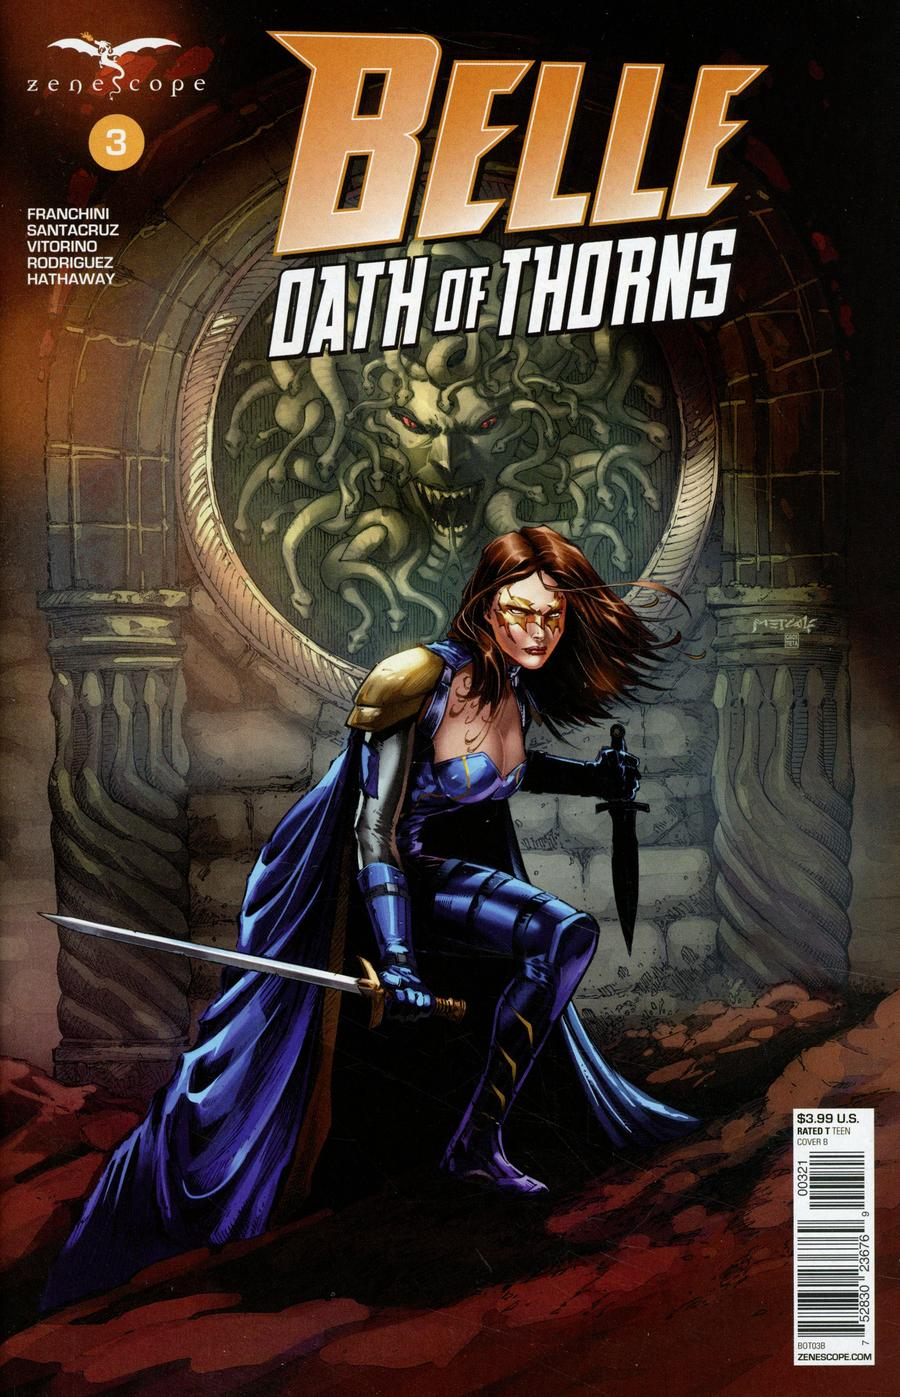 Grimm Fairy Tales Presents Belle Oath Of Thorns #3 Cover B Jason Metcalf